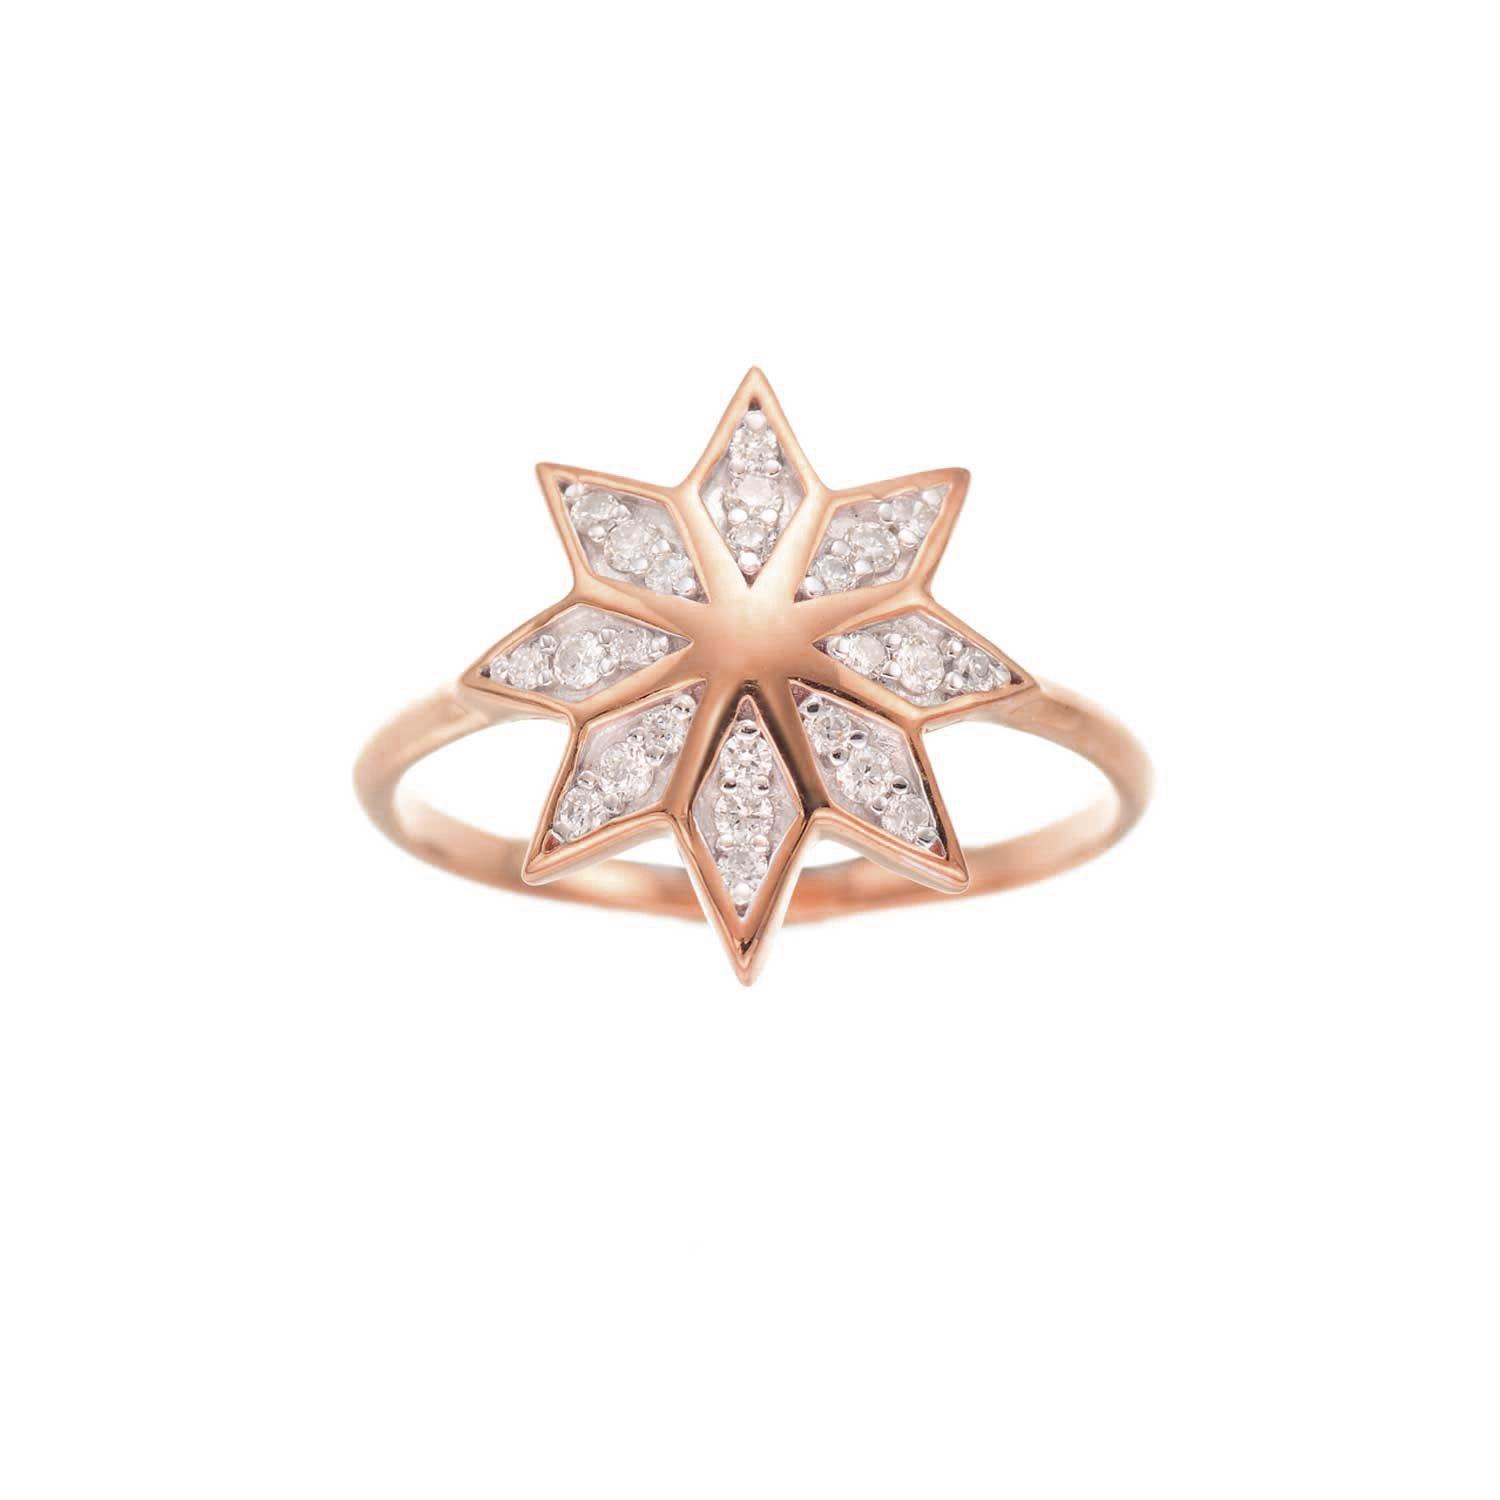 Lakshmi Ring. 9k Rose Gold / Diamond